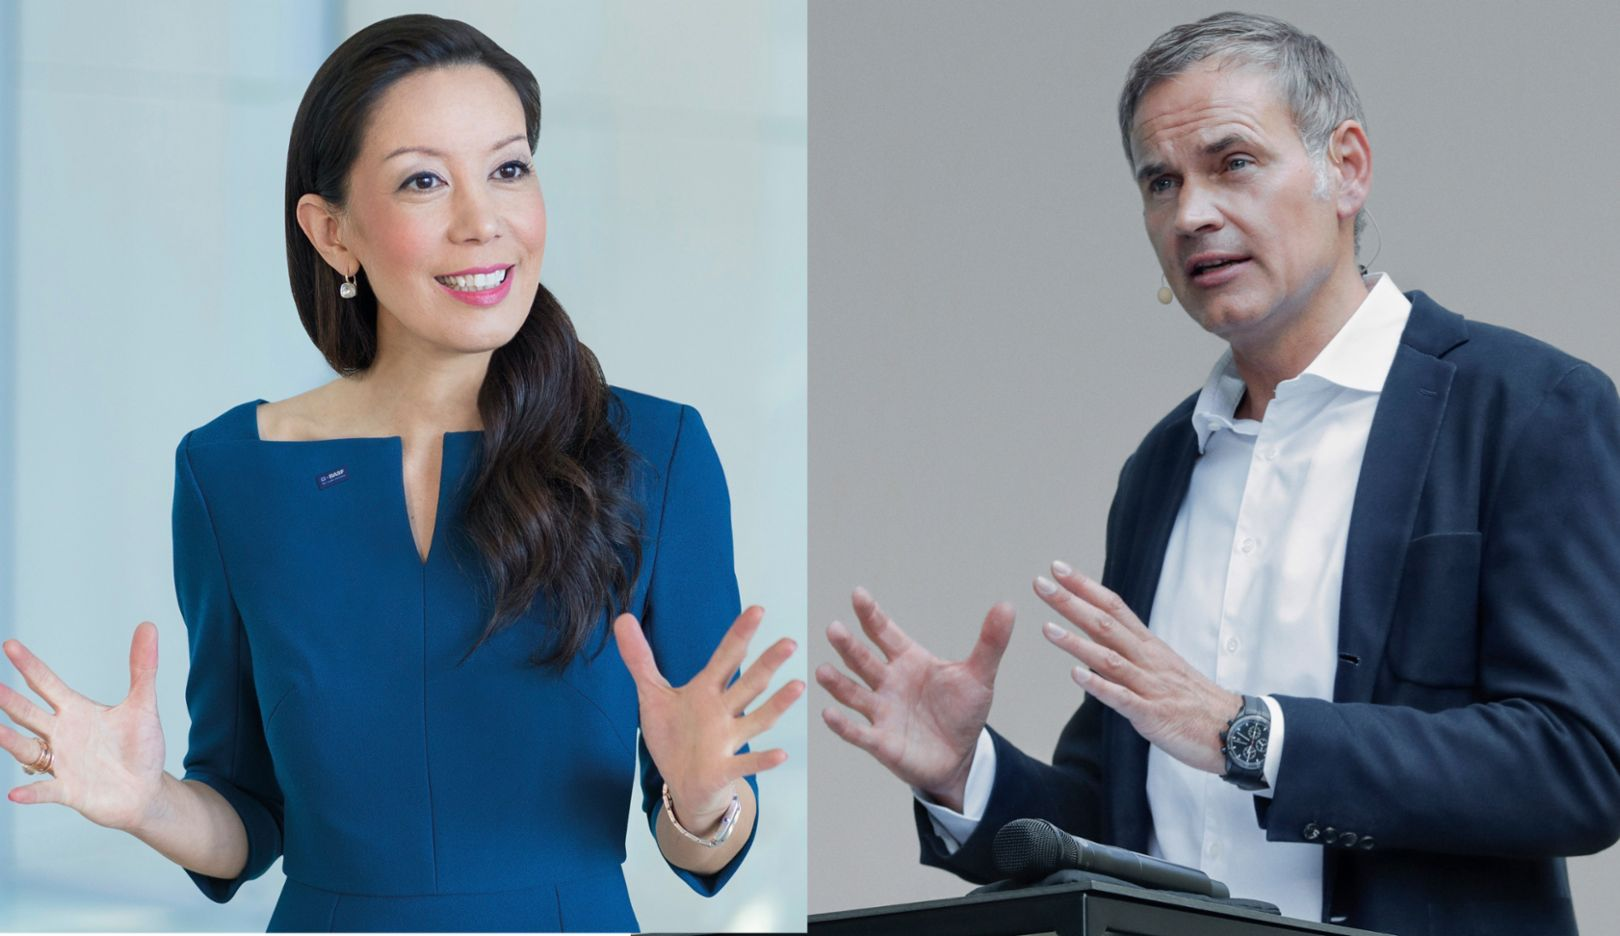 Saori Dubourg, Executive Board Member at BASF, Oliver Blume, Porsche CEO, l-r, 2020